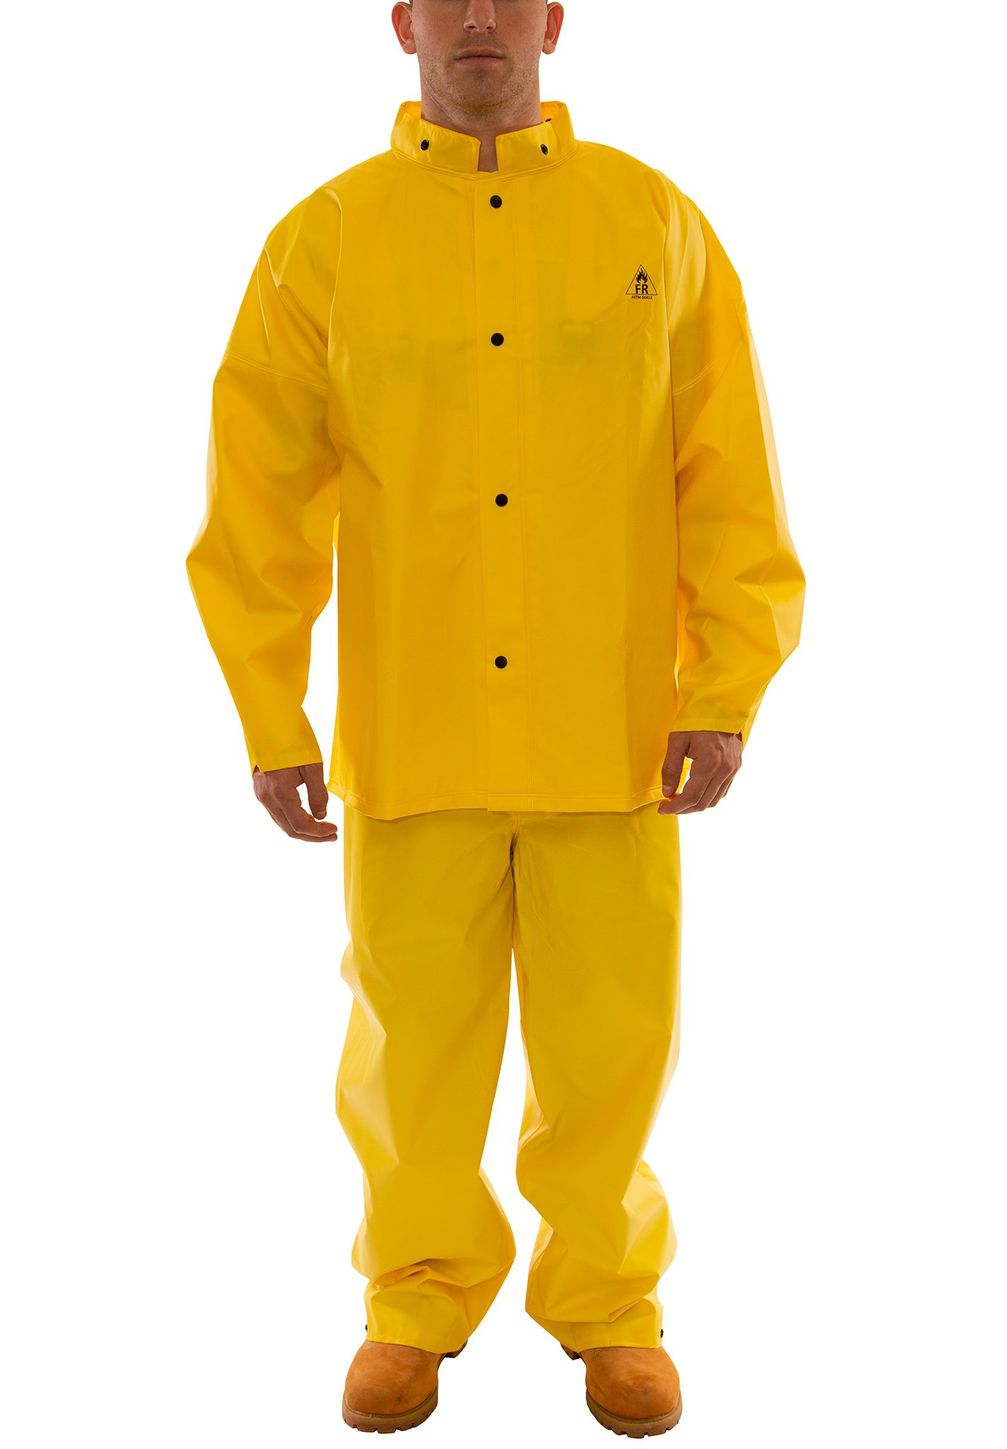 tingley-s56307-durascrim-fire-resistant-suit-3-piece-pvc-coated-chemical-resistant-with-detachable-hood-example.jpg